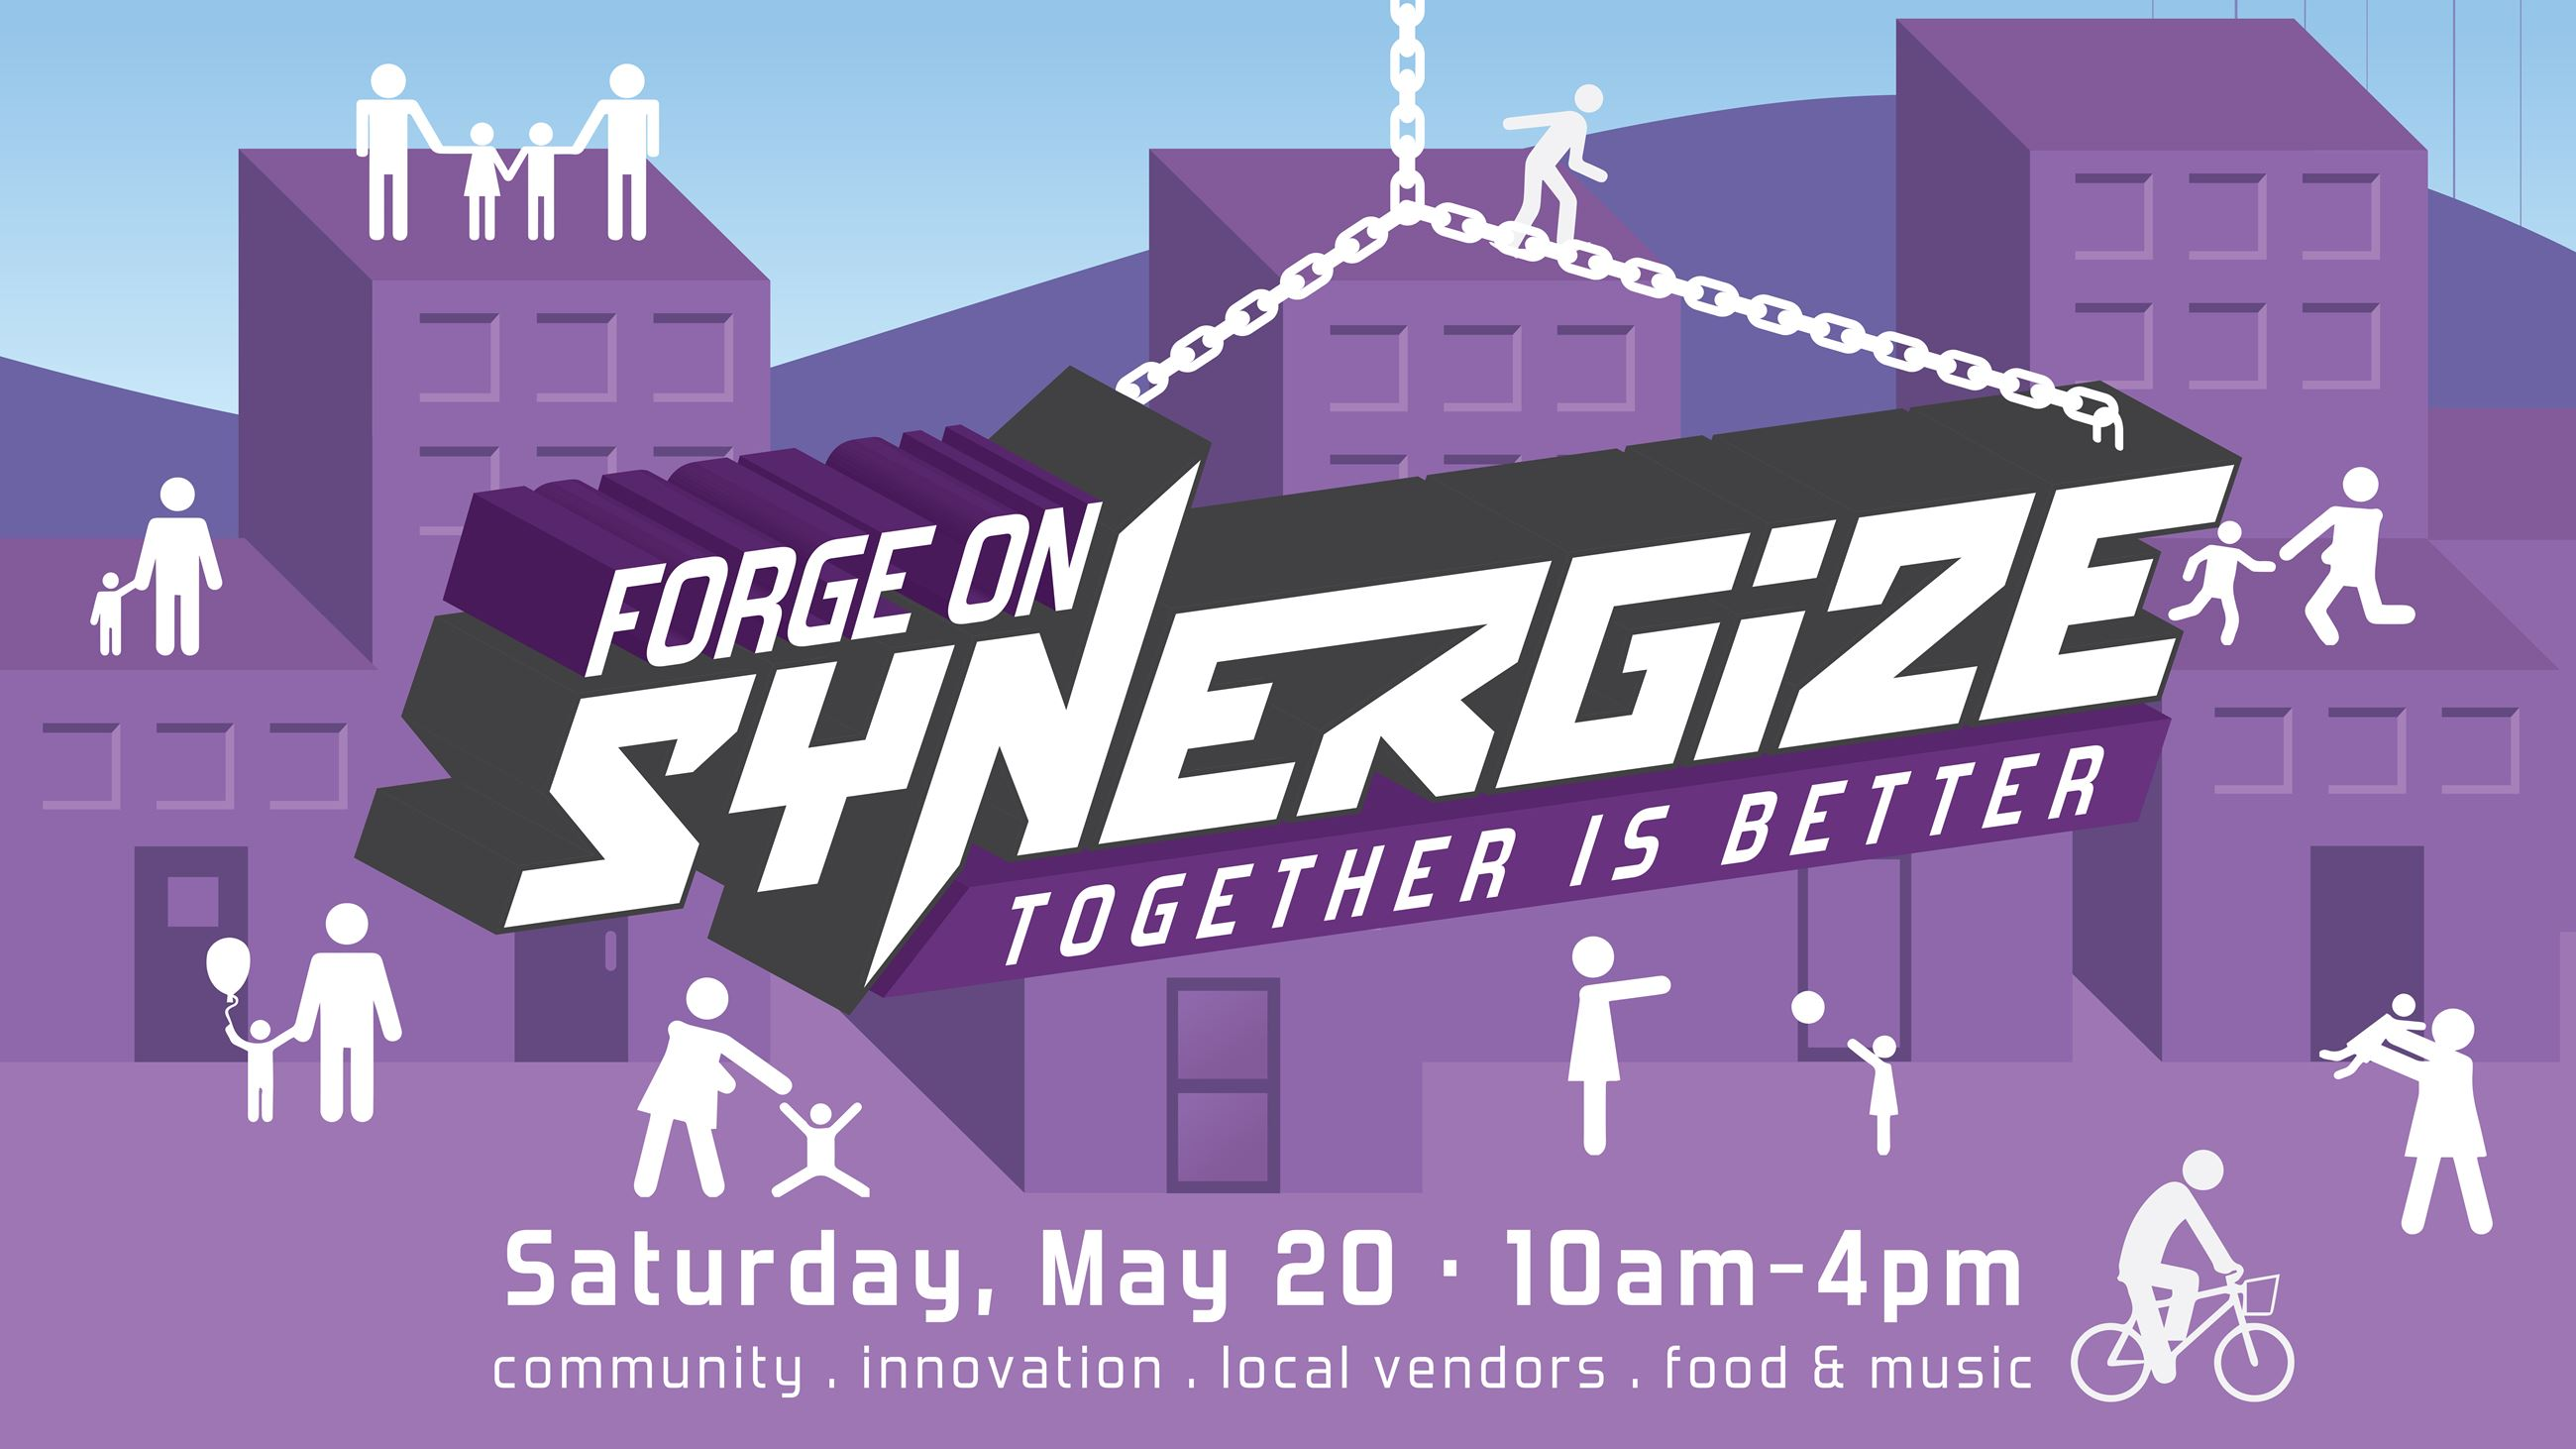 forge on synergize